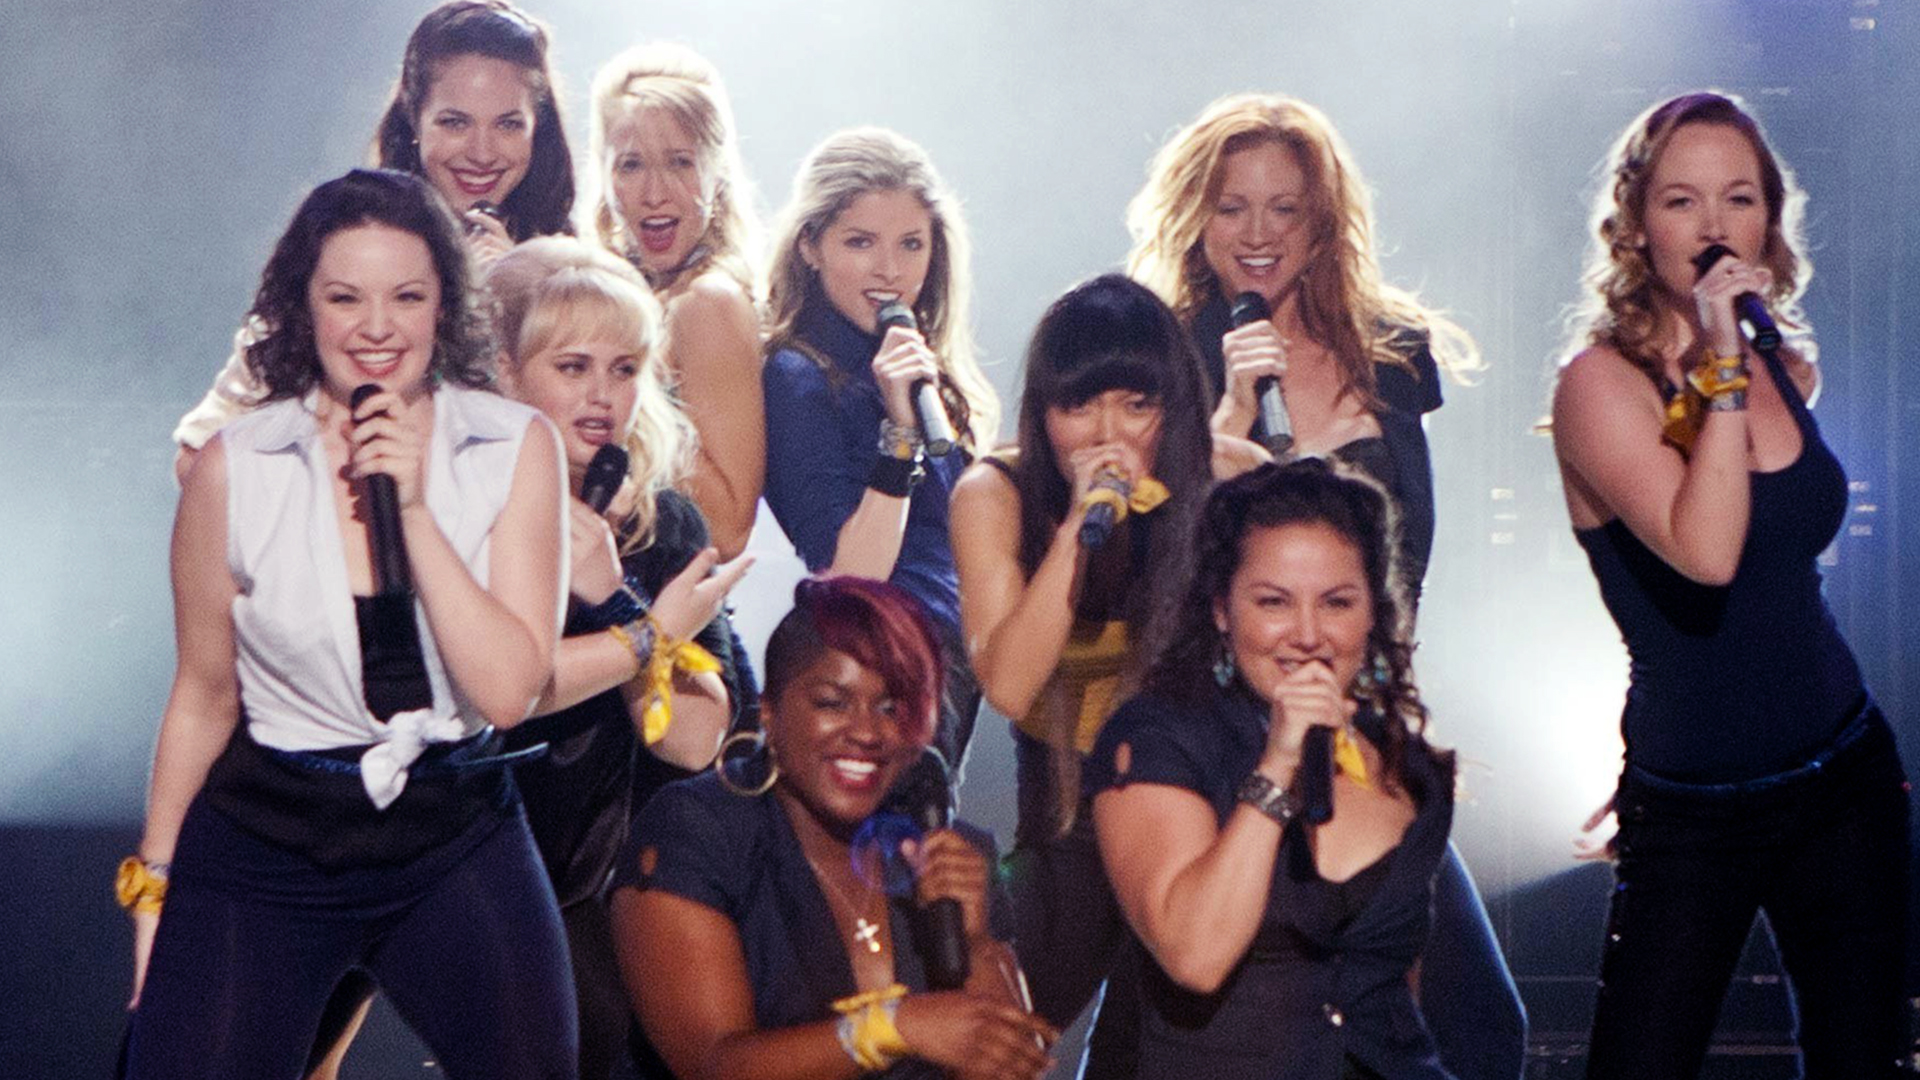 Anna Kendrick Rebel Wilson To Star In Pitch Perfect 3